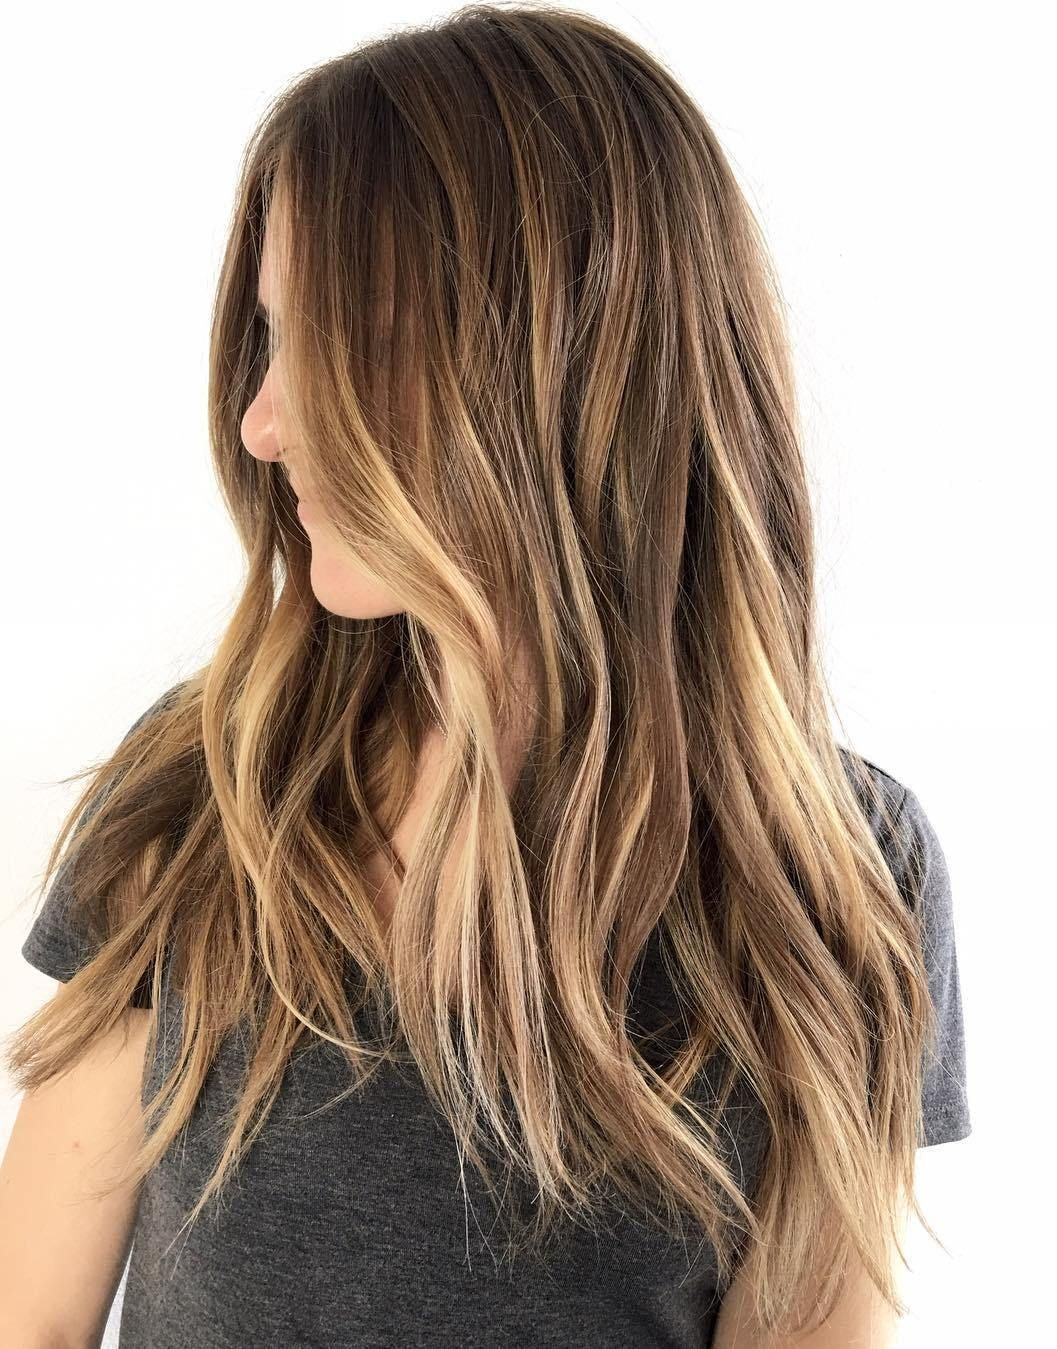 45 ideas for light brown hair with highlights and lowlights | long